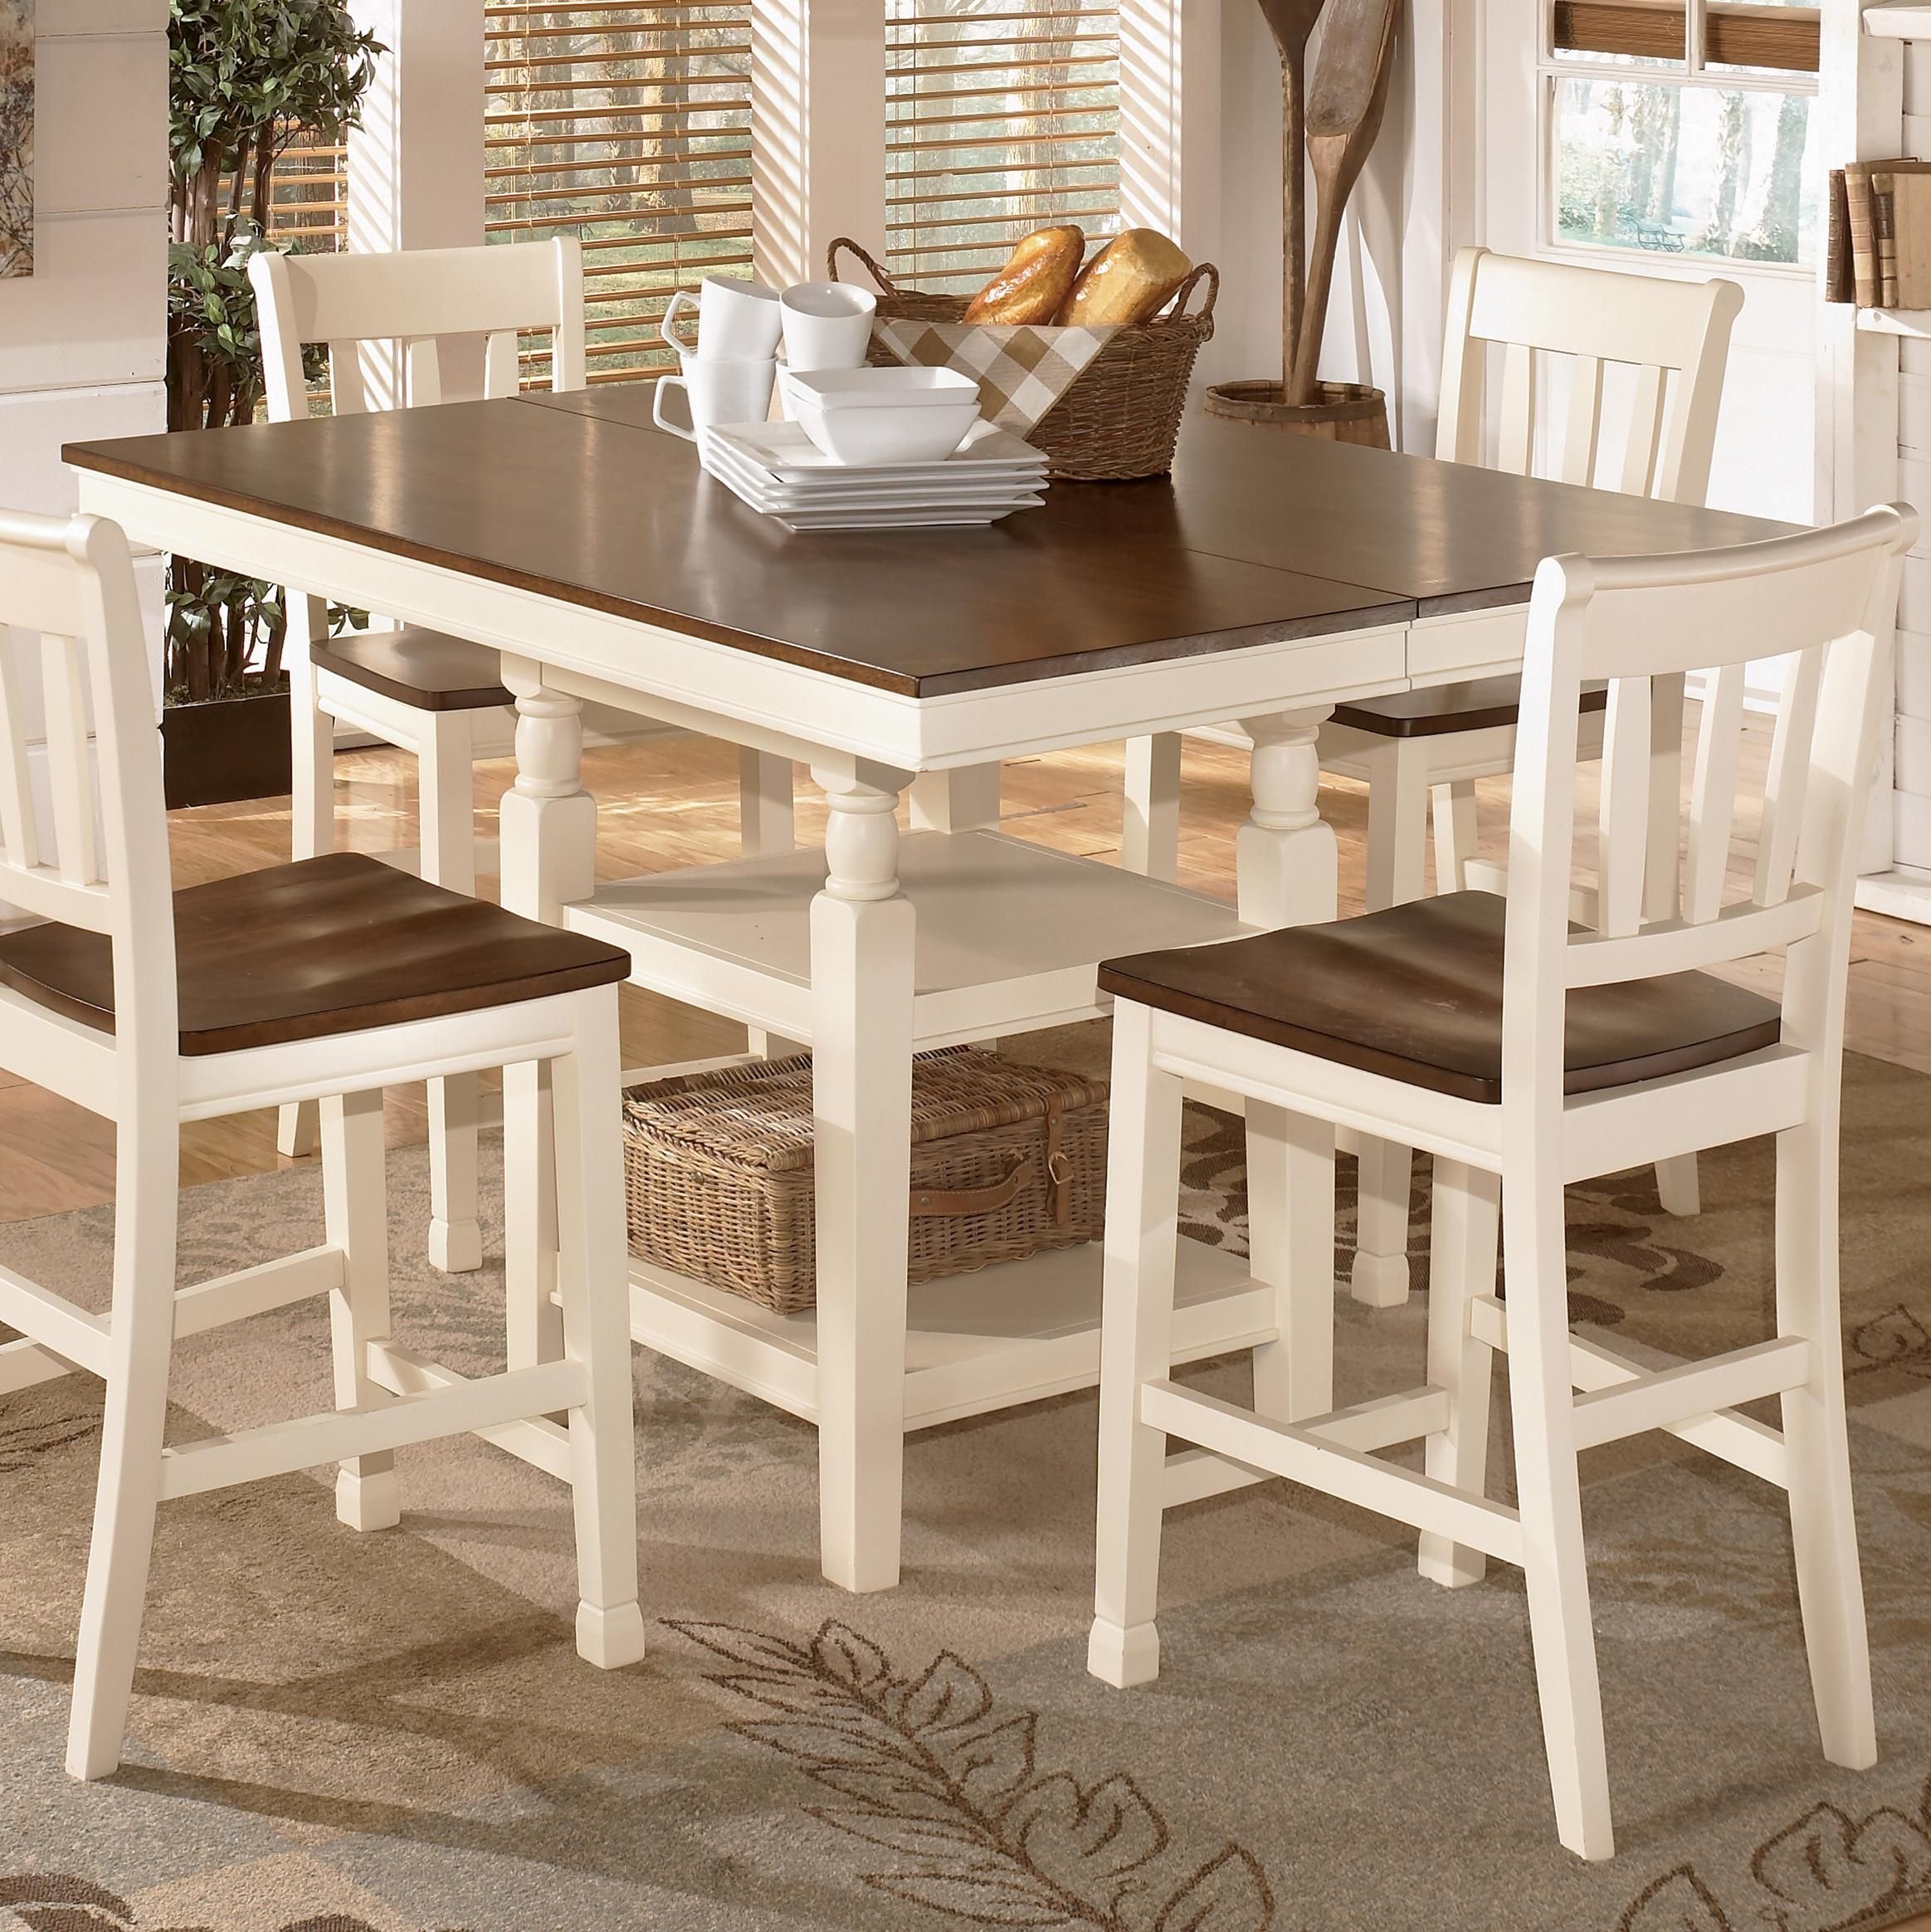 Whitesburg Square Dining Room Counter Extension Table With Storage Stunning Ashley Dining Room Table Set Inspiration